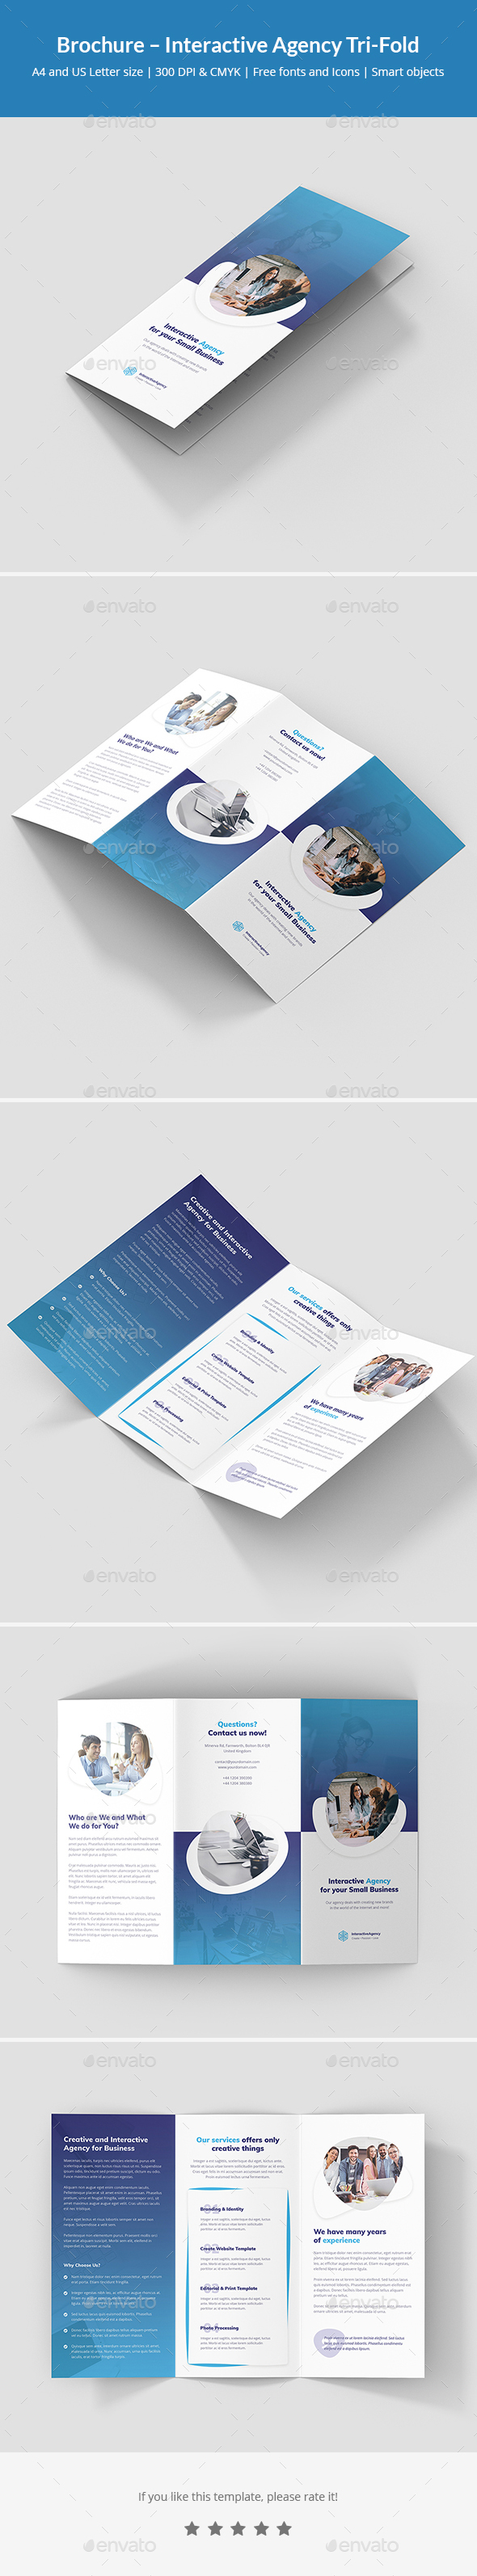 Brochure – Interactive Agency Tri-Fold - Corporate Brochures